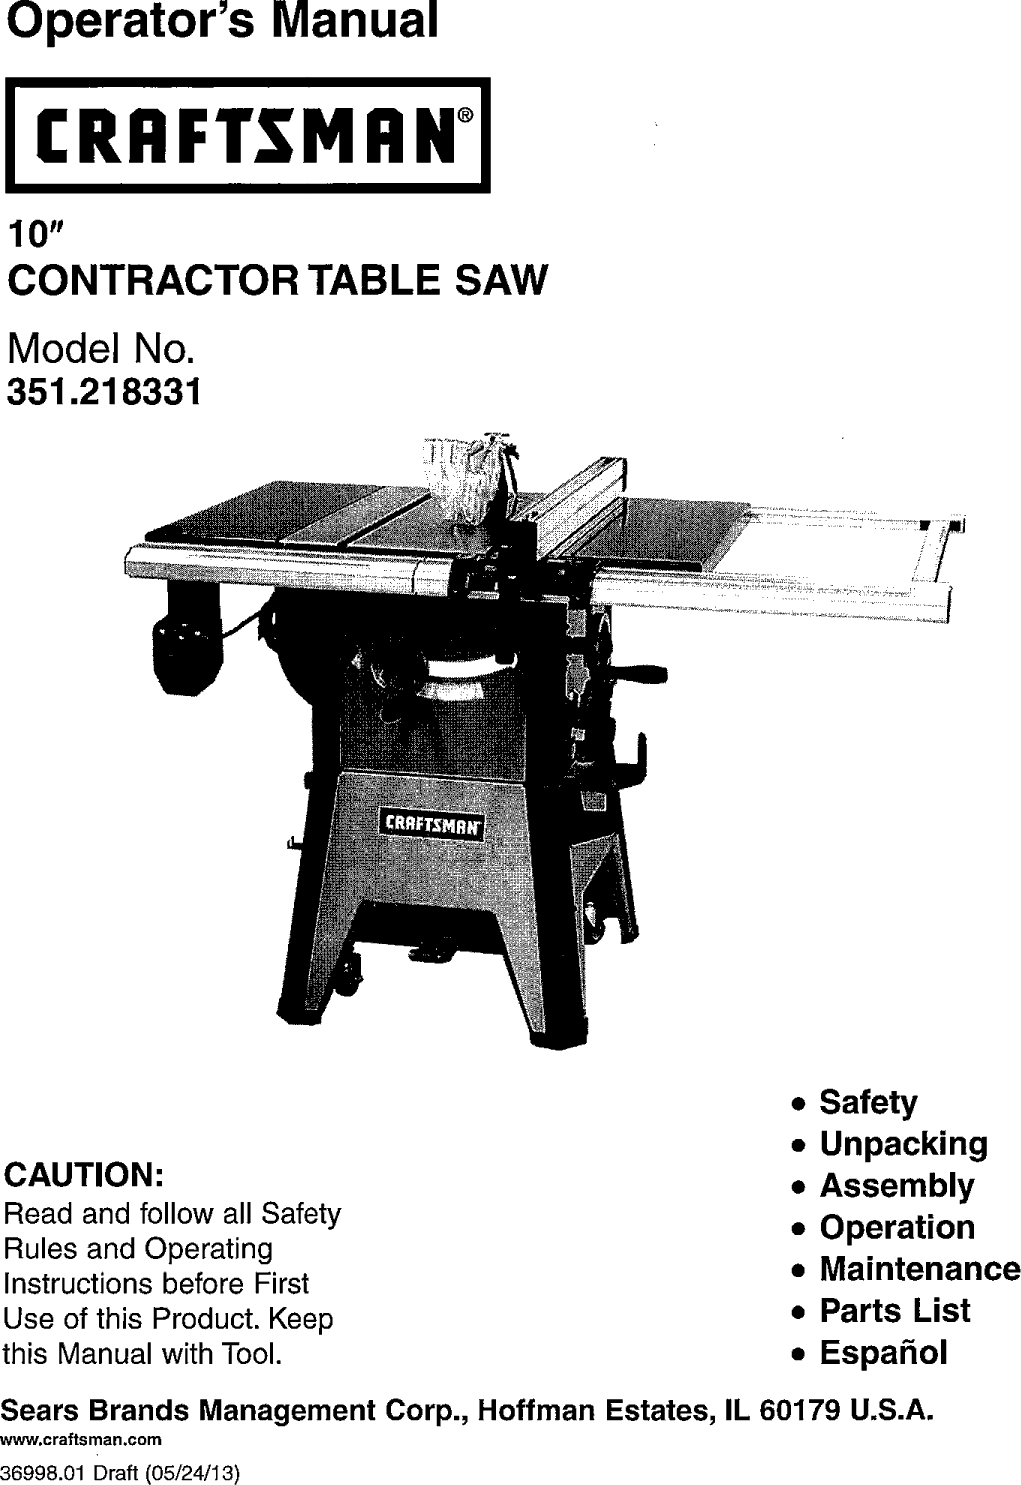 Craftsman 141218331 User Manual SAW TABLE^ Manuals And